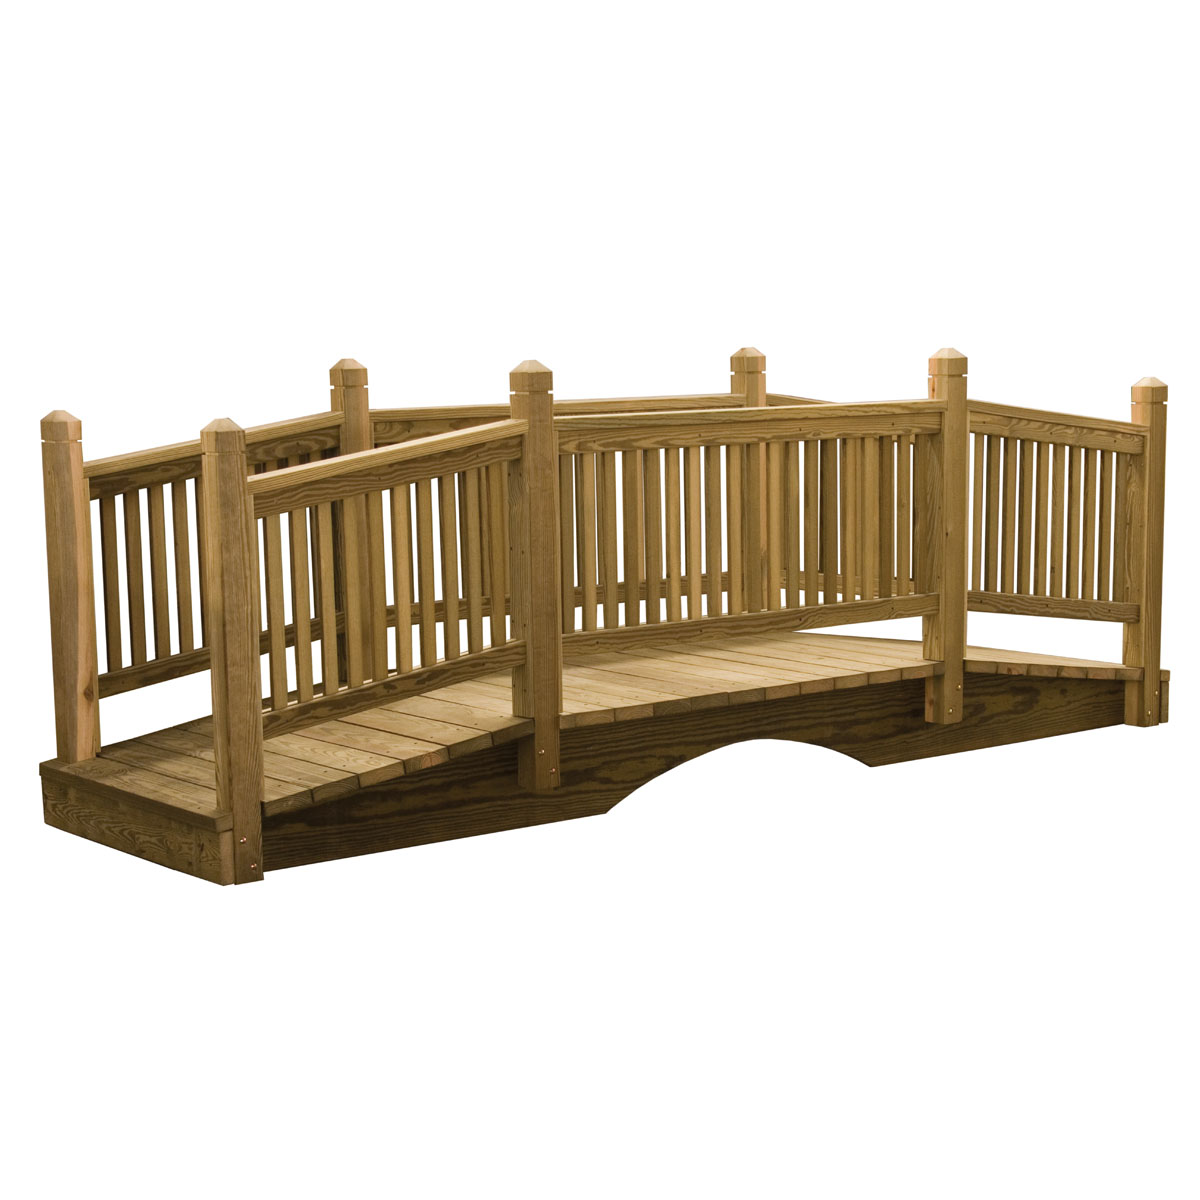 12 39 bridge luxcraft - Luxcraft fine outdoor furniture ...